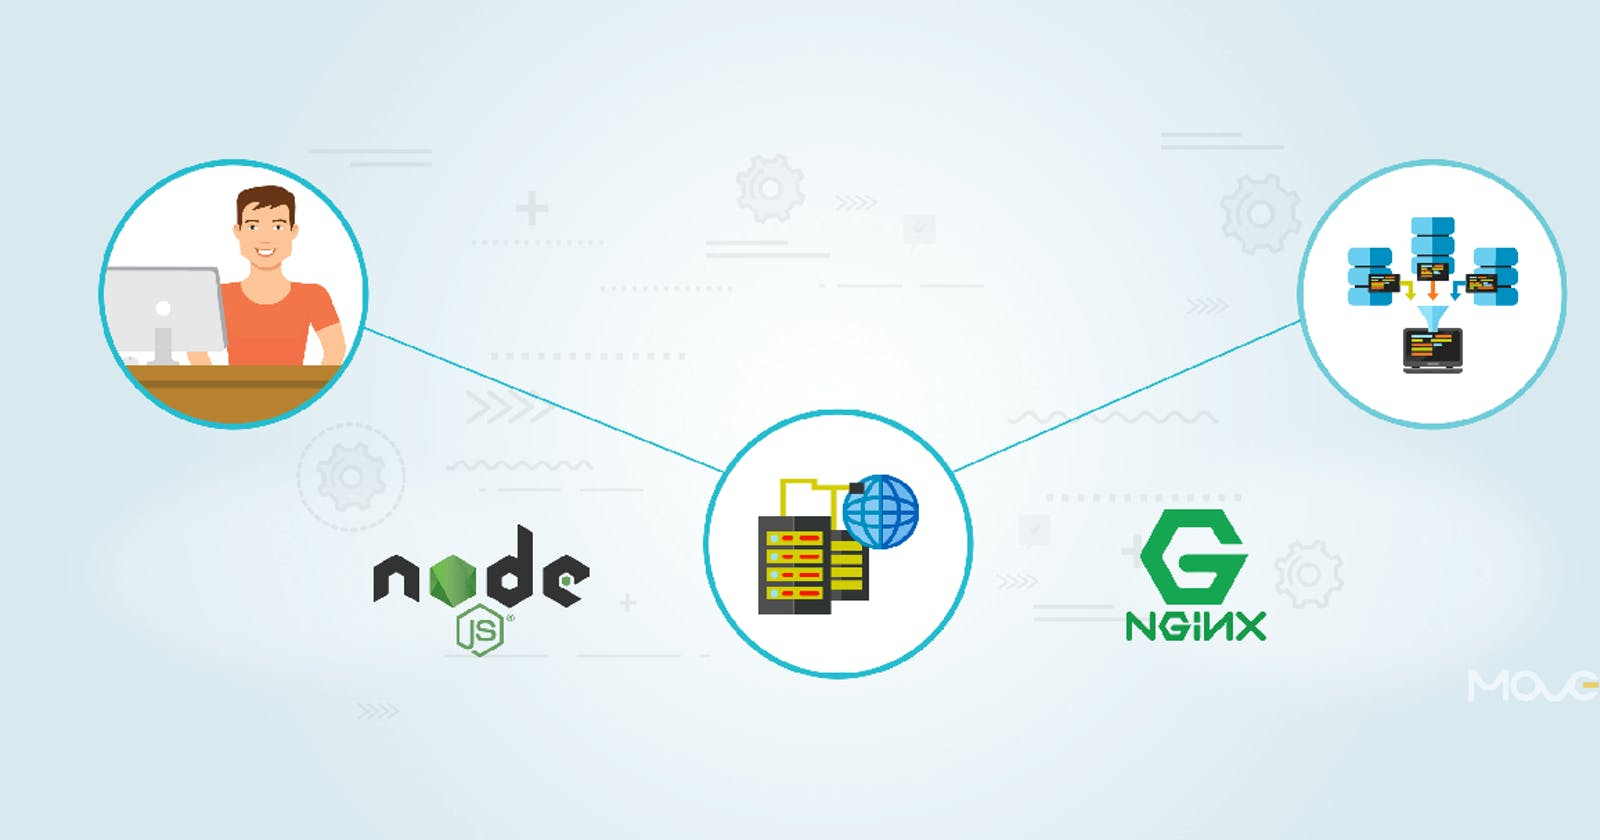 How to deploy  your node application in web and configure reverse proxy.